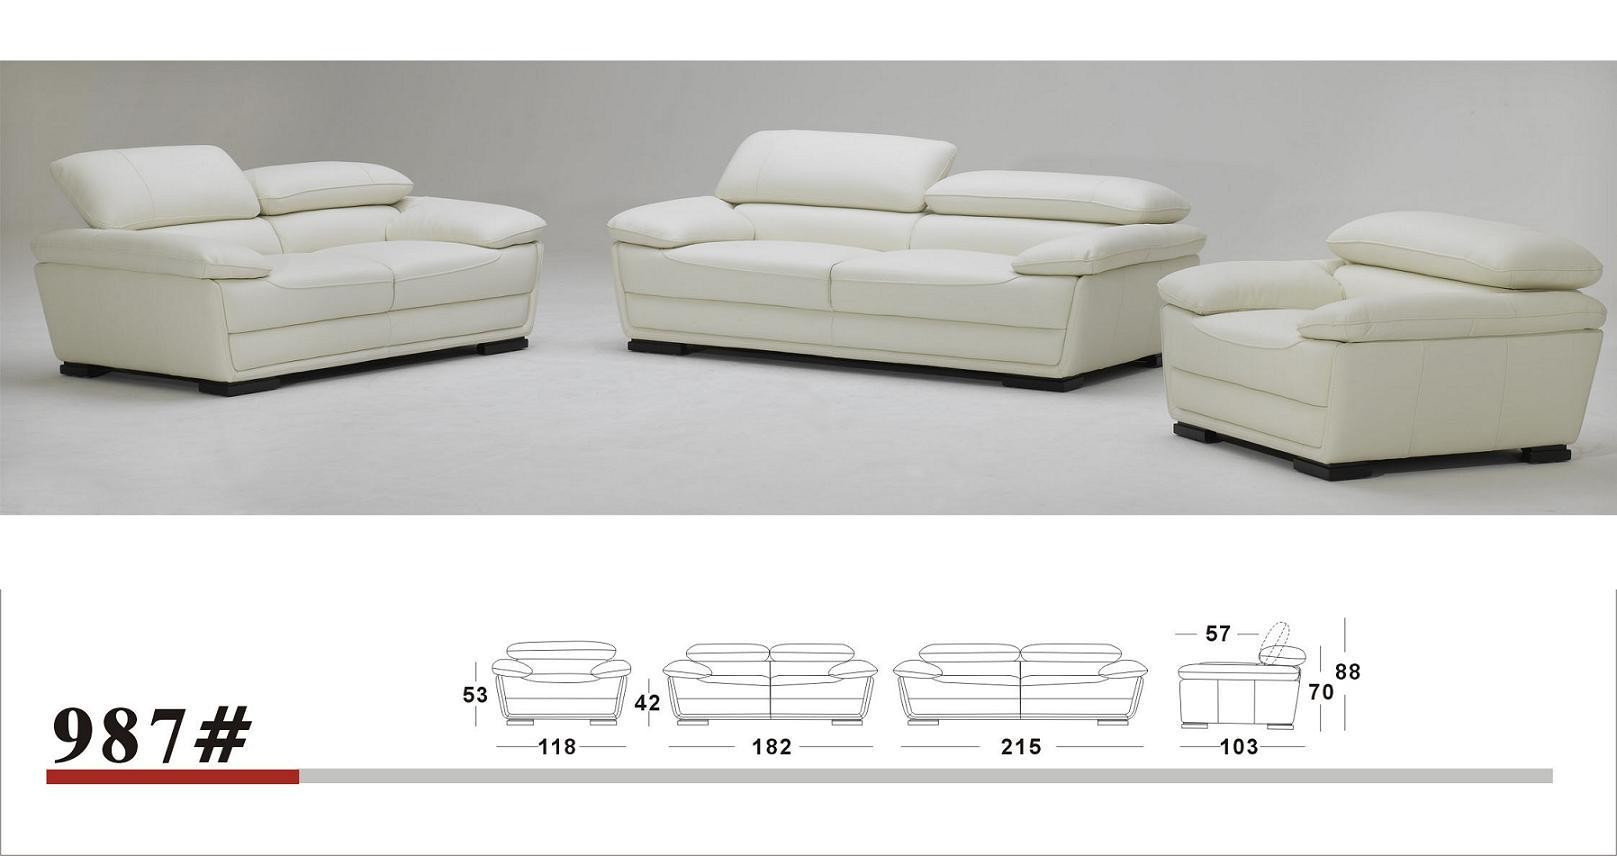 Sofa Set Action K987 Contemporary Espresso Leather Sofa Set With